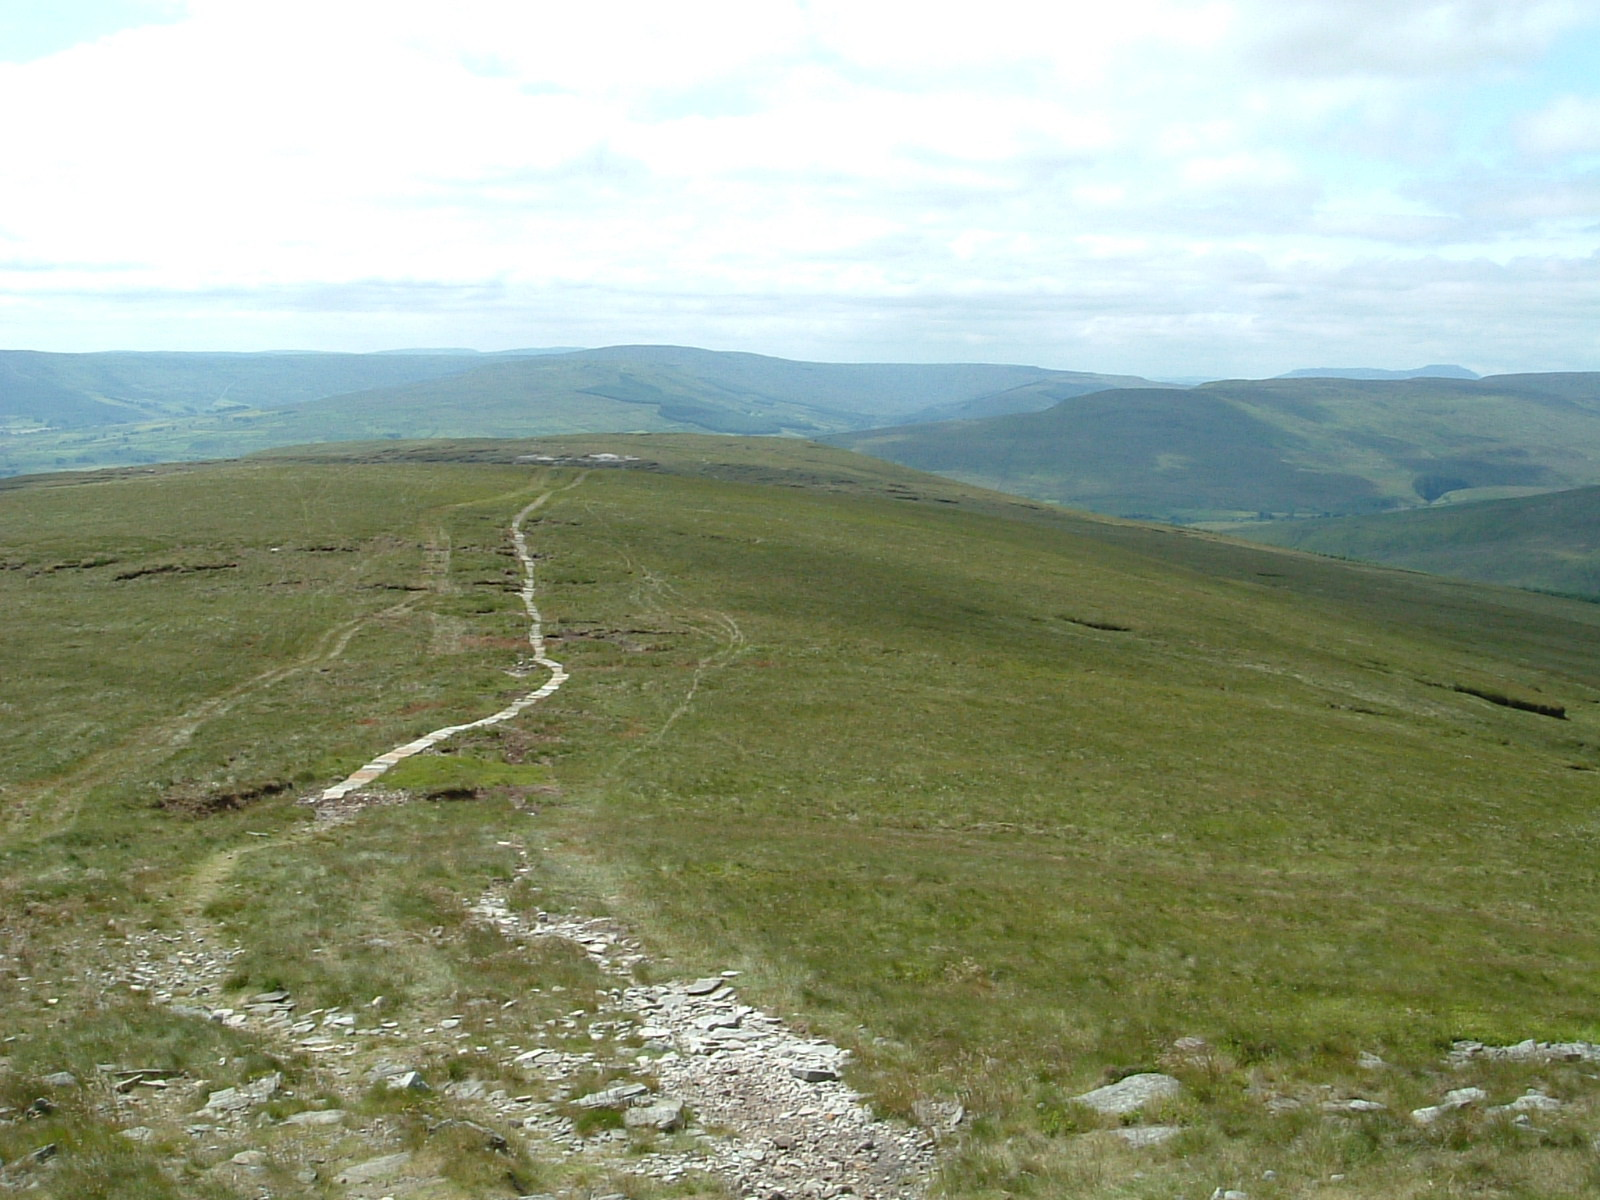 The track up Great Shunner Fell